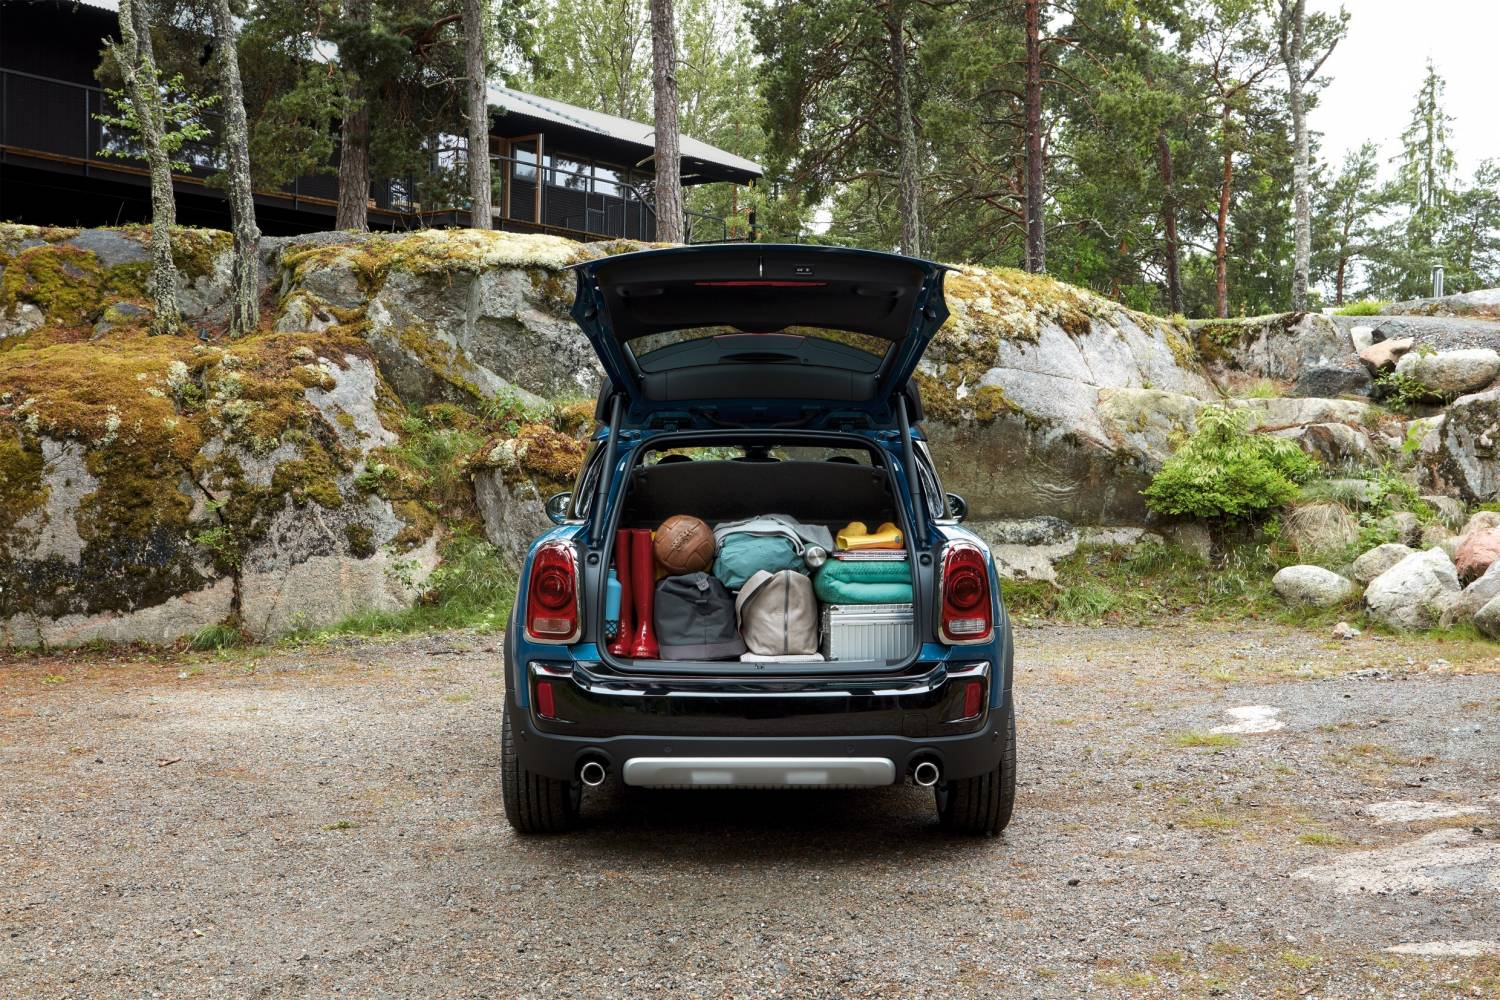 Cooper S Countryman Island Blue Boot Static Lifestyle Rear Image New Car 2016 High Resolution JPEG 1